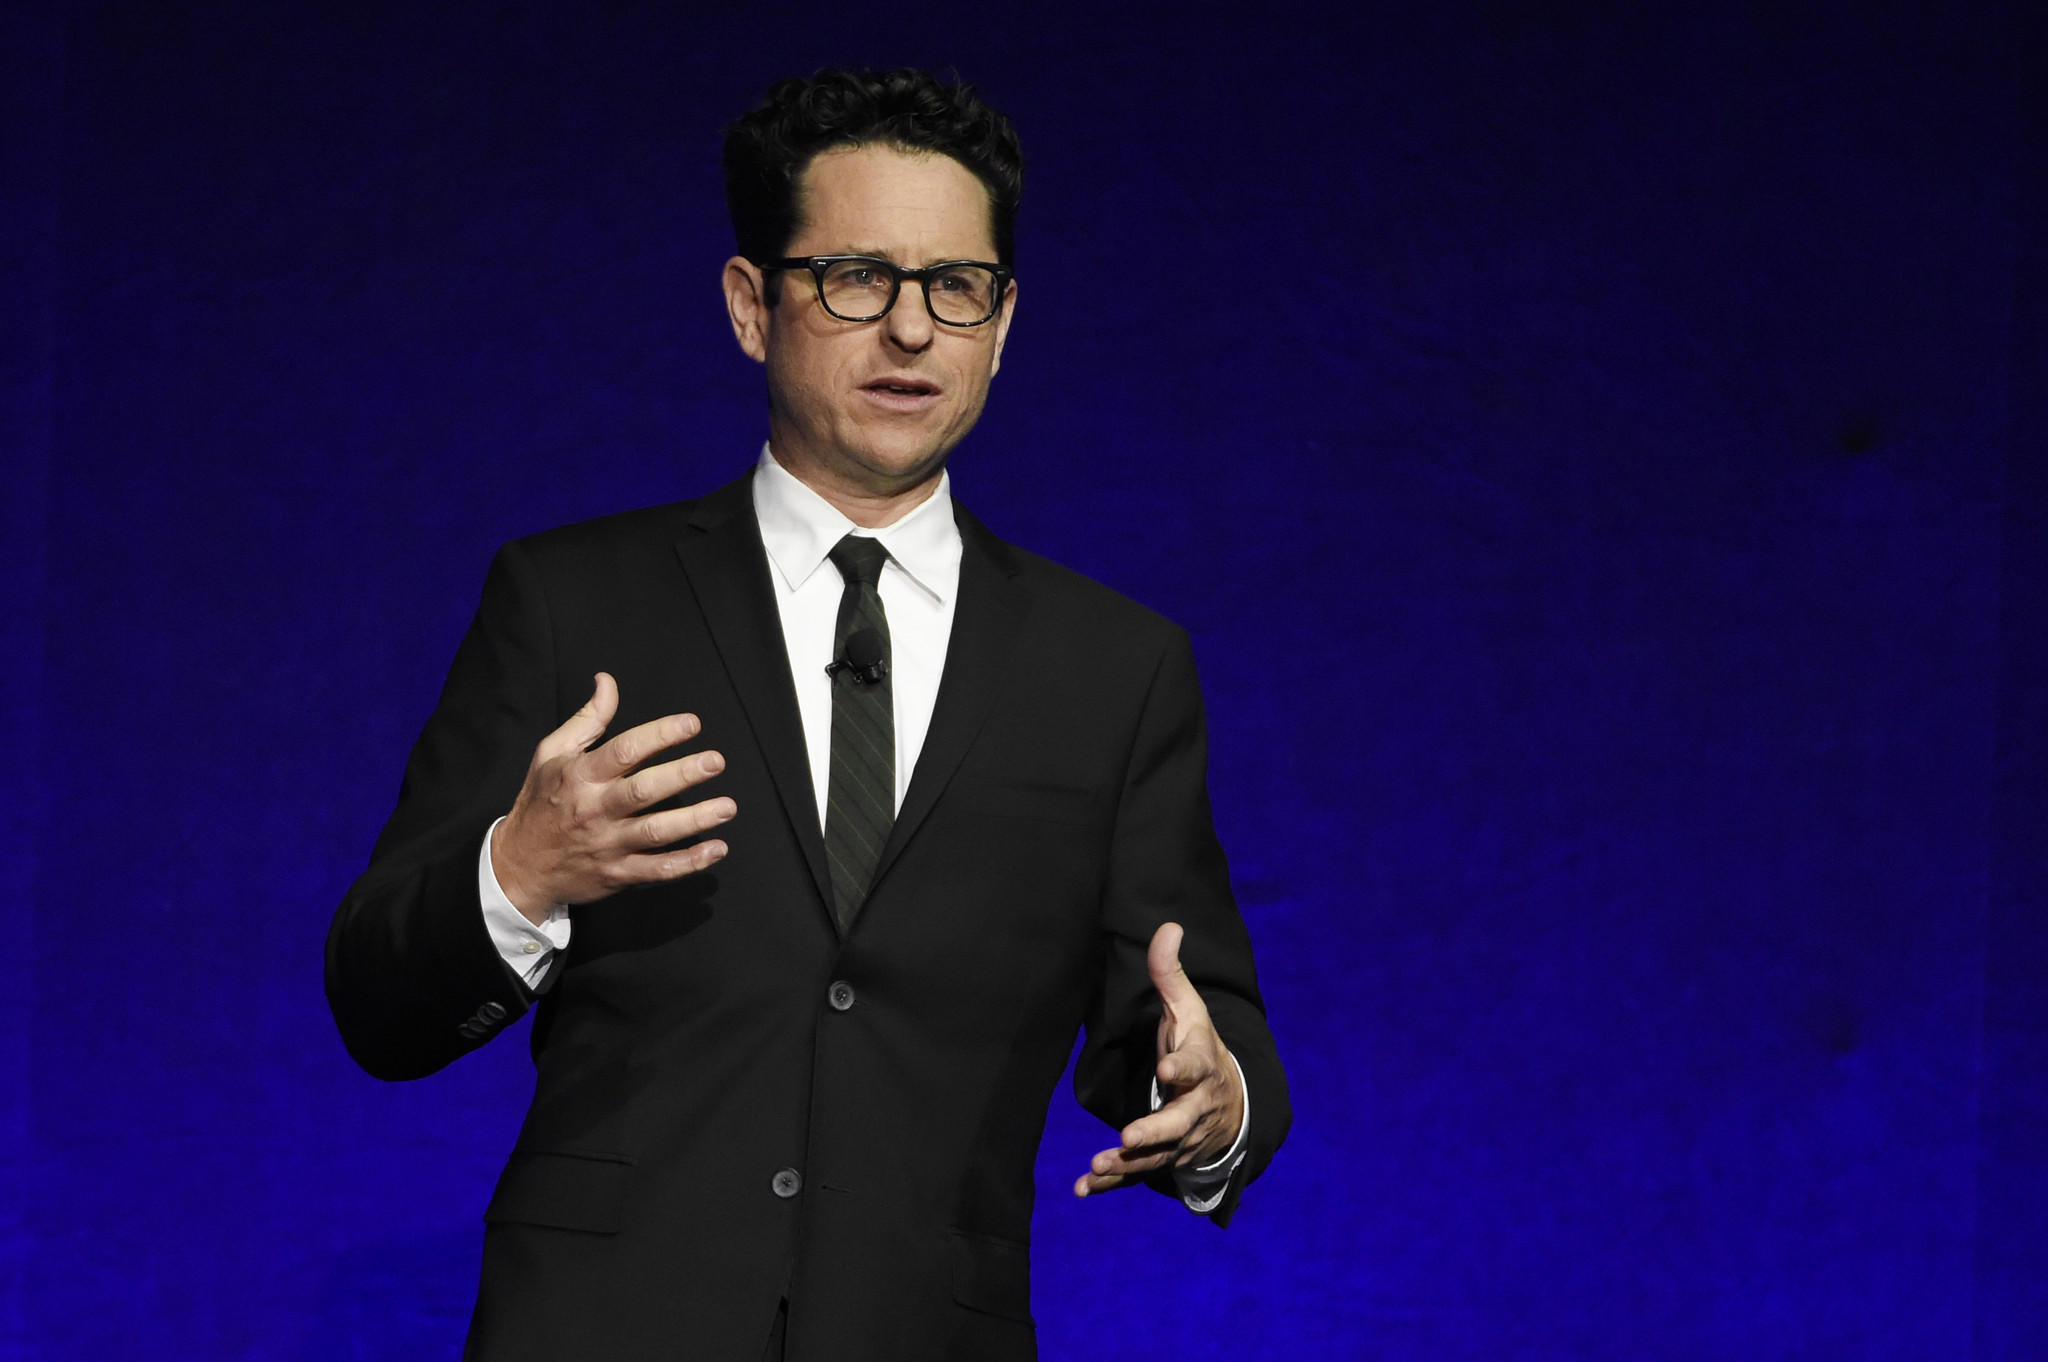 Filmmaker J.J. Abrams accepts the Showman of the Year Award during the Paramount Pictures presentation at CinemaCon 2016. (Chris Pizzello / Invision)